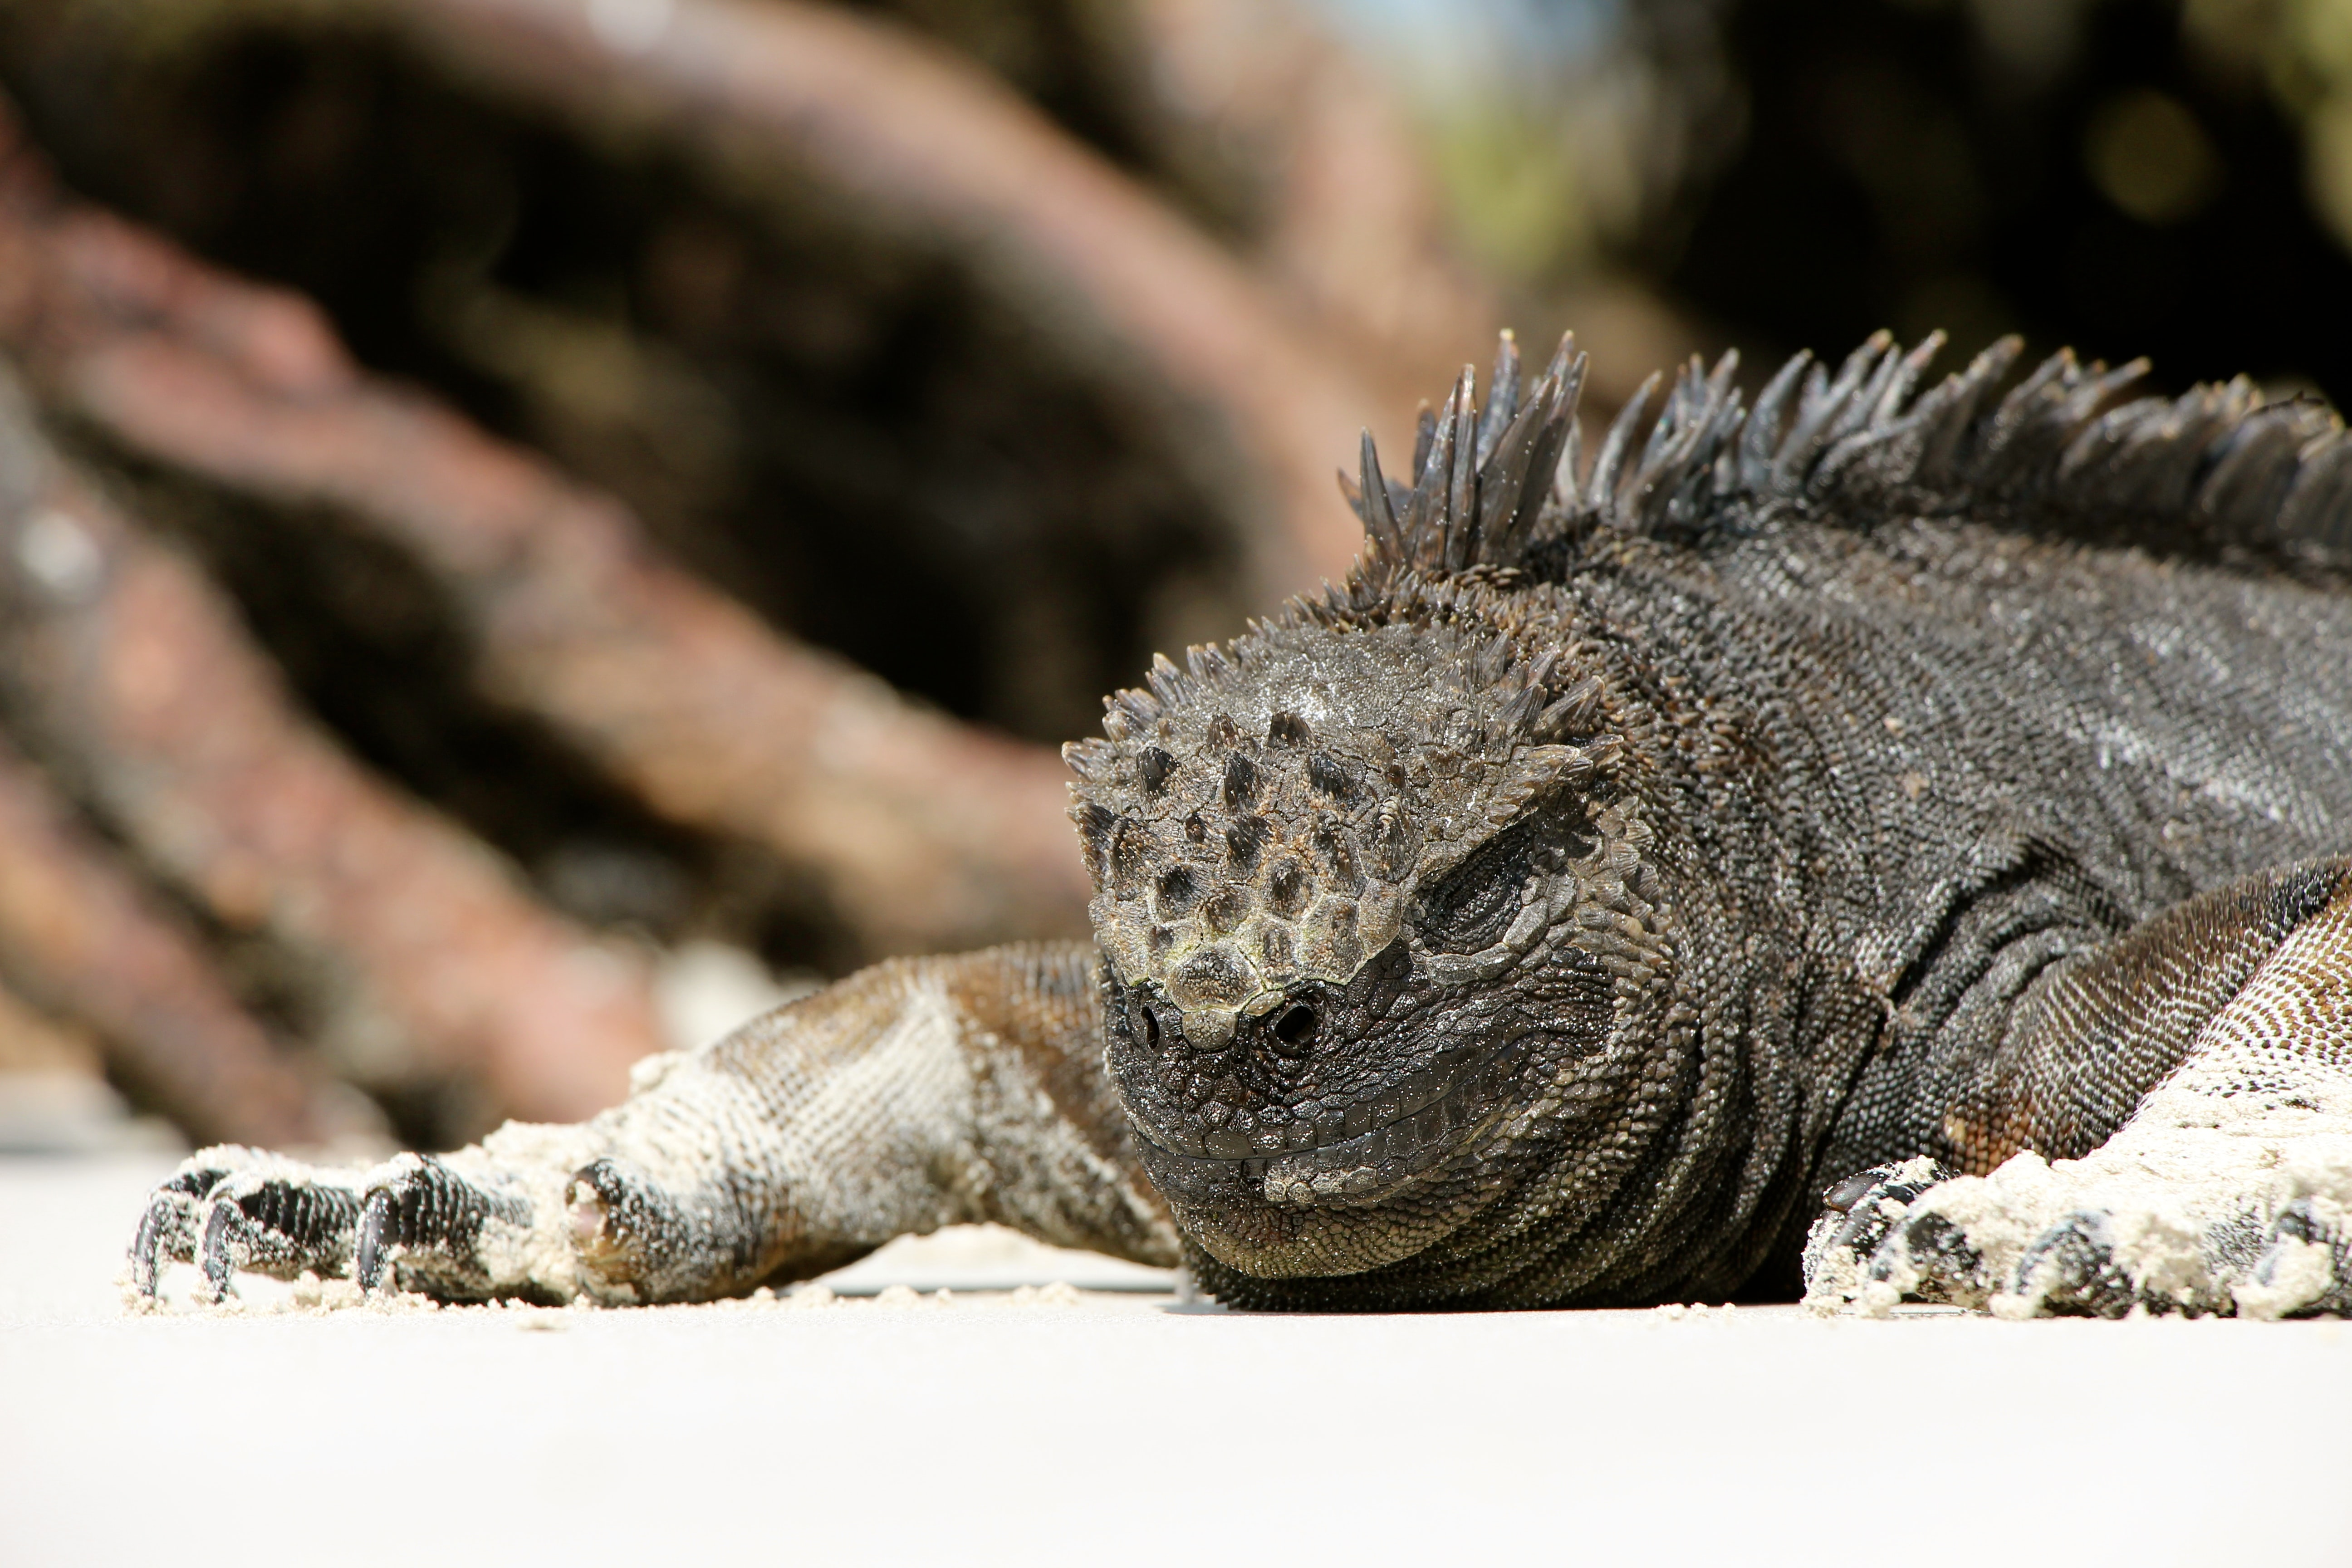 closeup photo of gray iguana